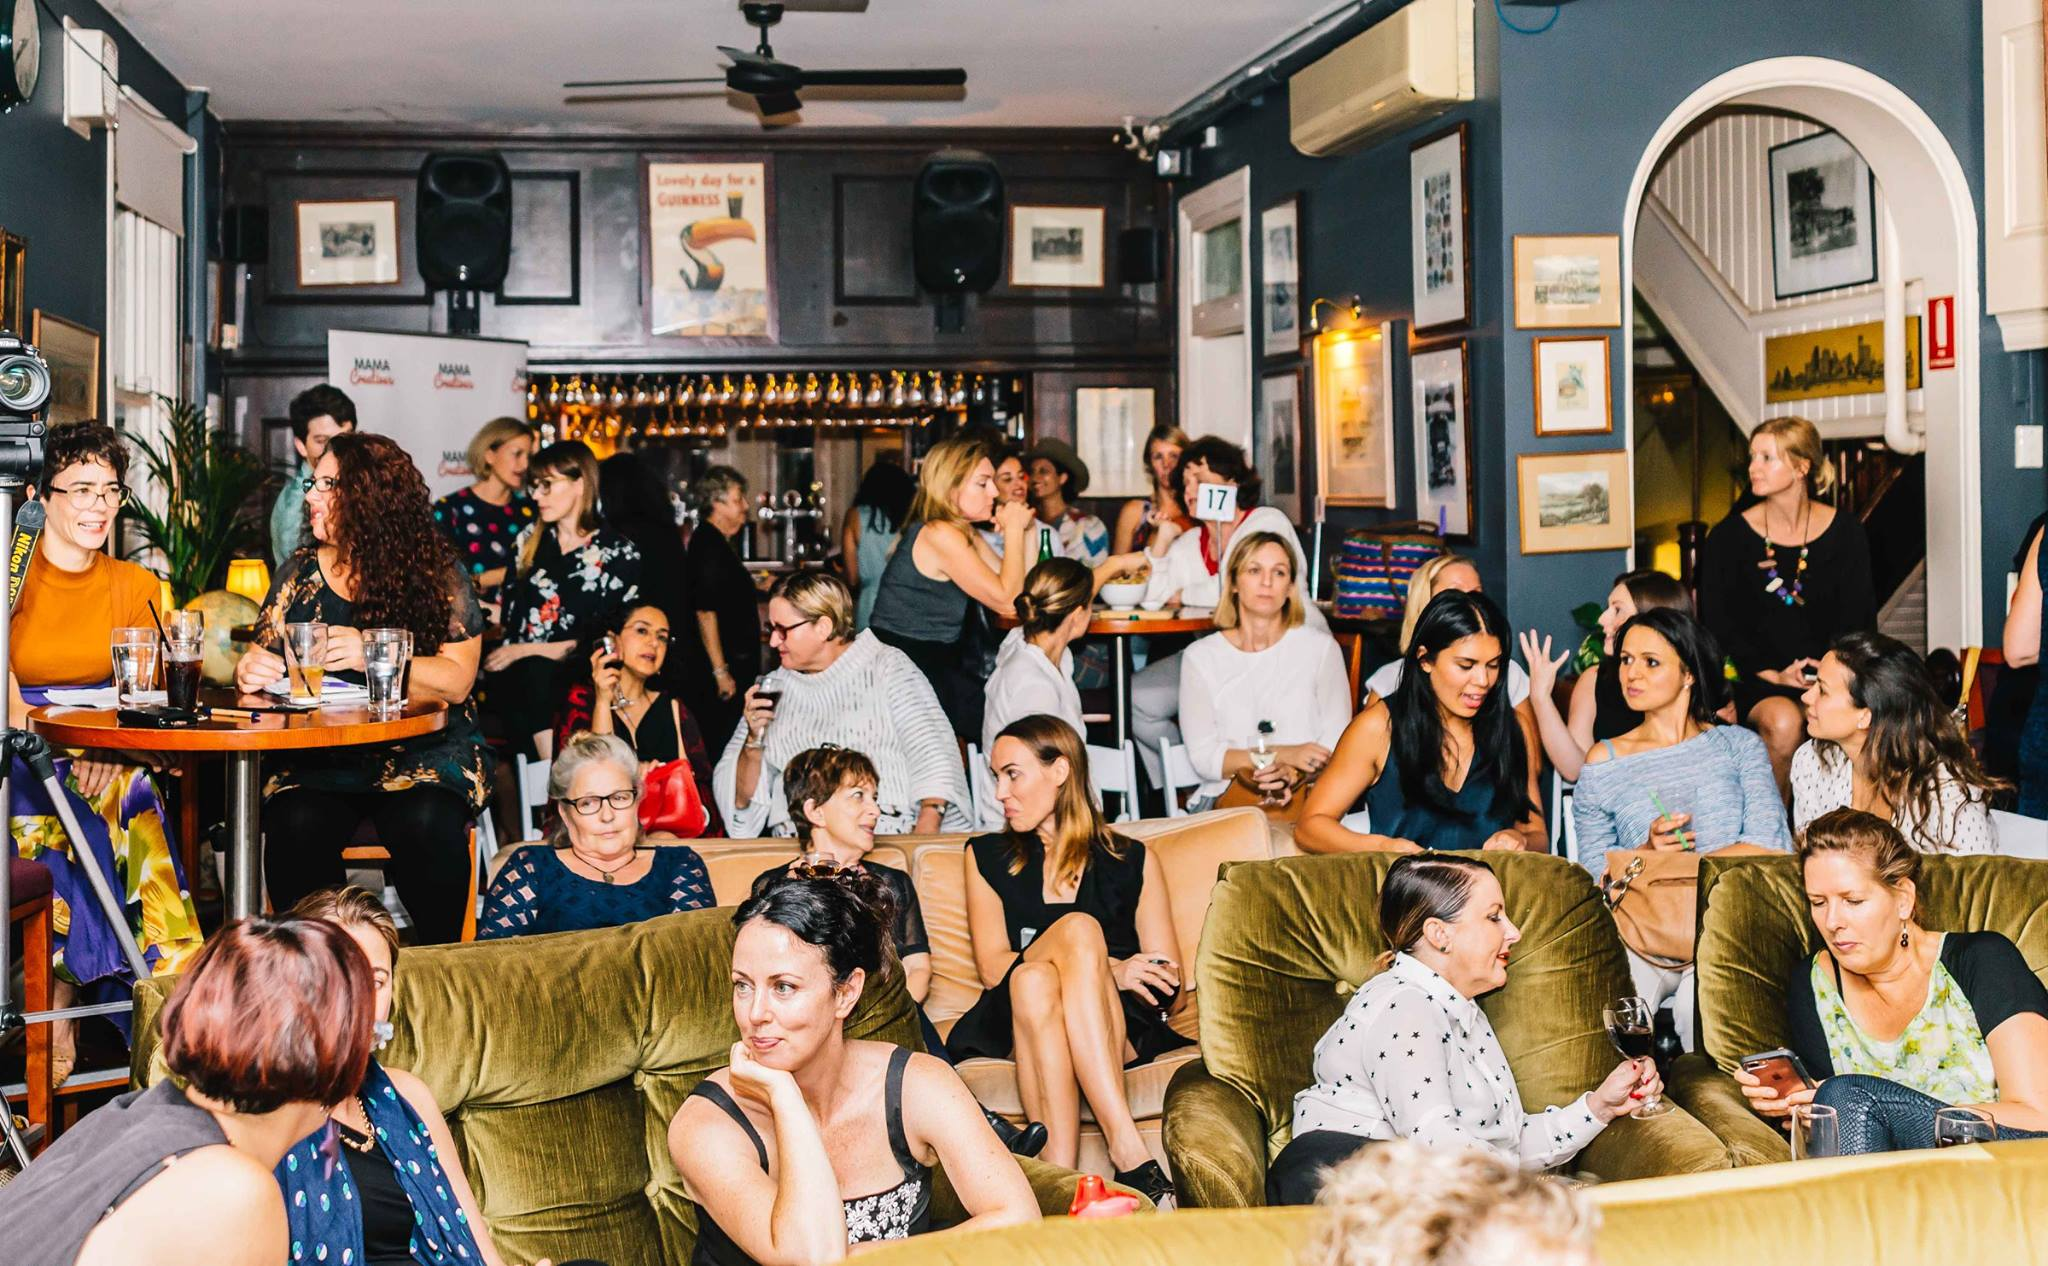 A roomful of creative mamas and women at our Mama Creatives Expert Blogger Panel: 'Sharing your voice & creative passion', featuring Alexx Stuart, founder of Low Tox Life, Lorraine Murphy, founder of The Remarkables Group & Jo Dunlop, creator of GLOBAL FASHPACK.